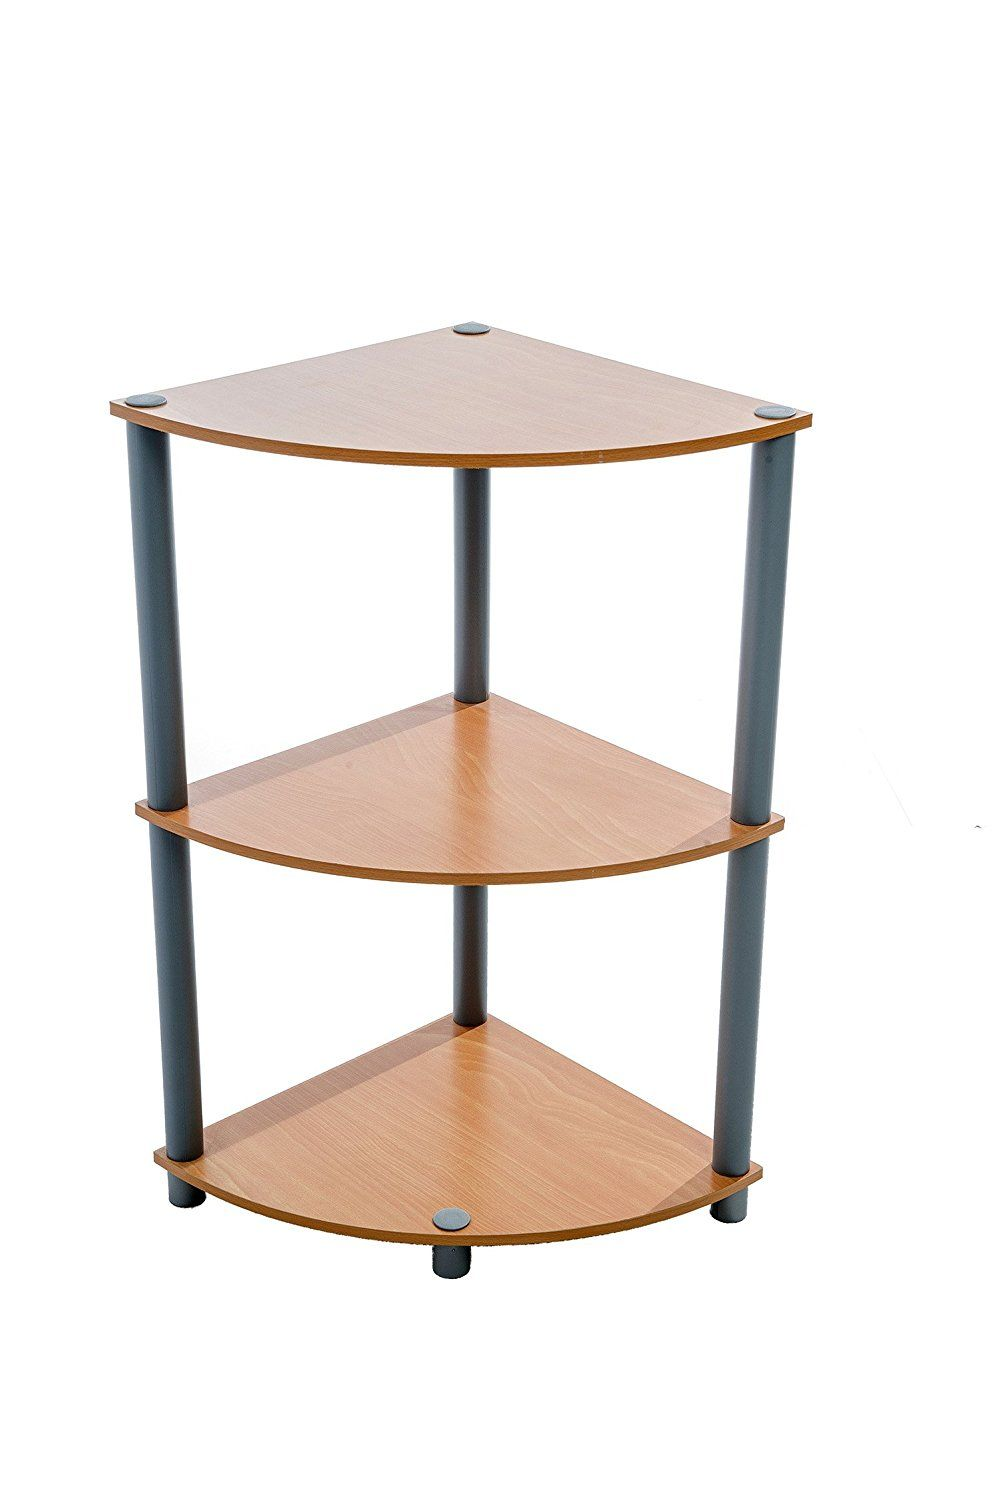 Home Source Industries Mr 2023 Multi Purpose Corner Shelf Rack Maple Finish Special Product Just For You See It Now Corner Shelves Shelves Tv Stand Wood